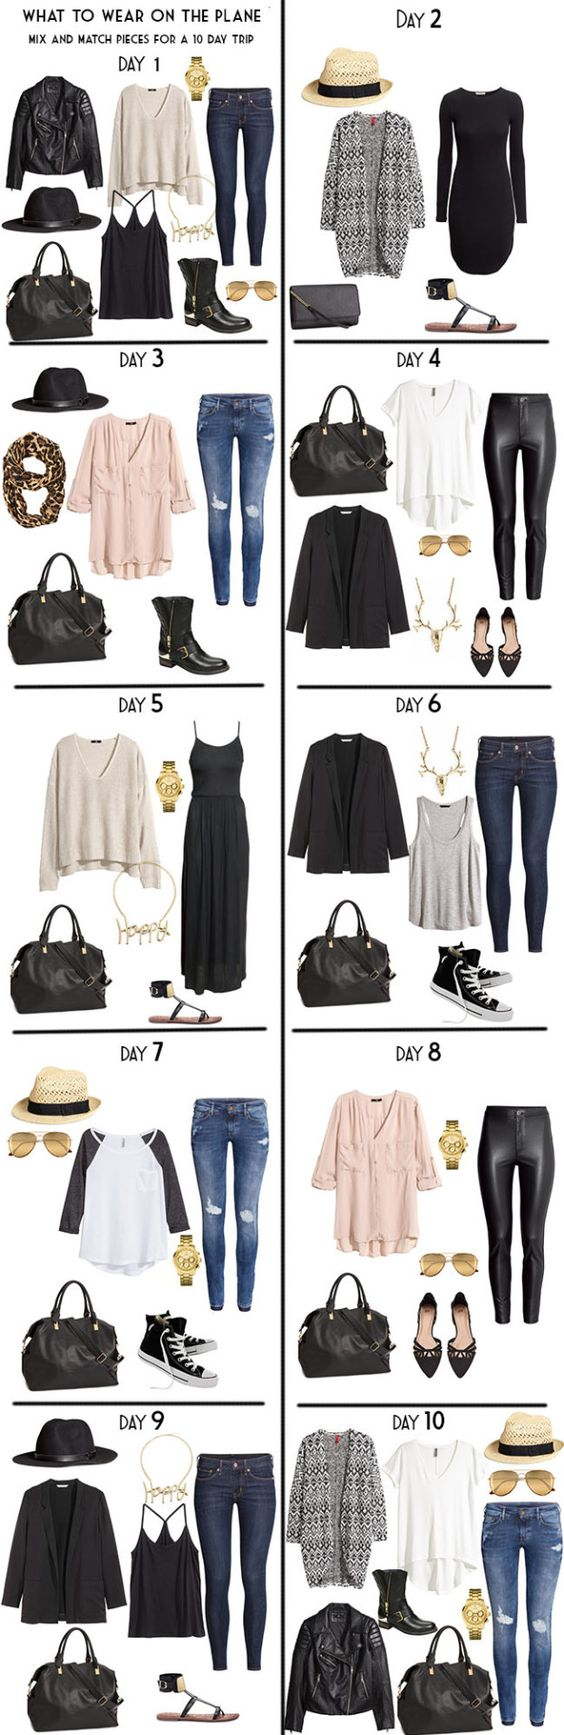 Capsule wardrobes are great for travel giving you loads of outfit options for only a carry on